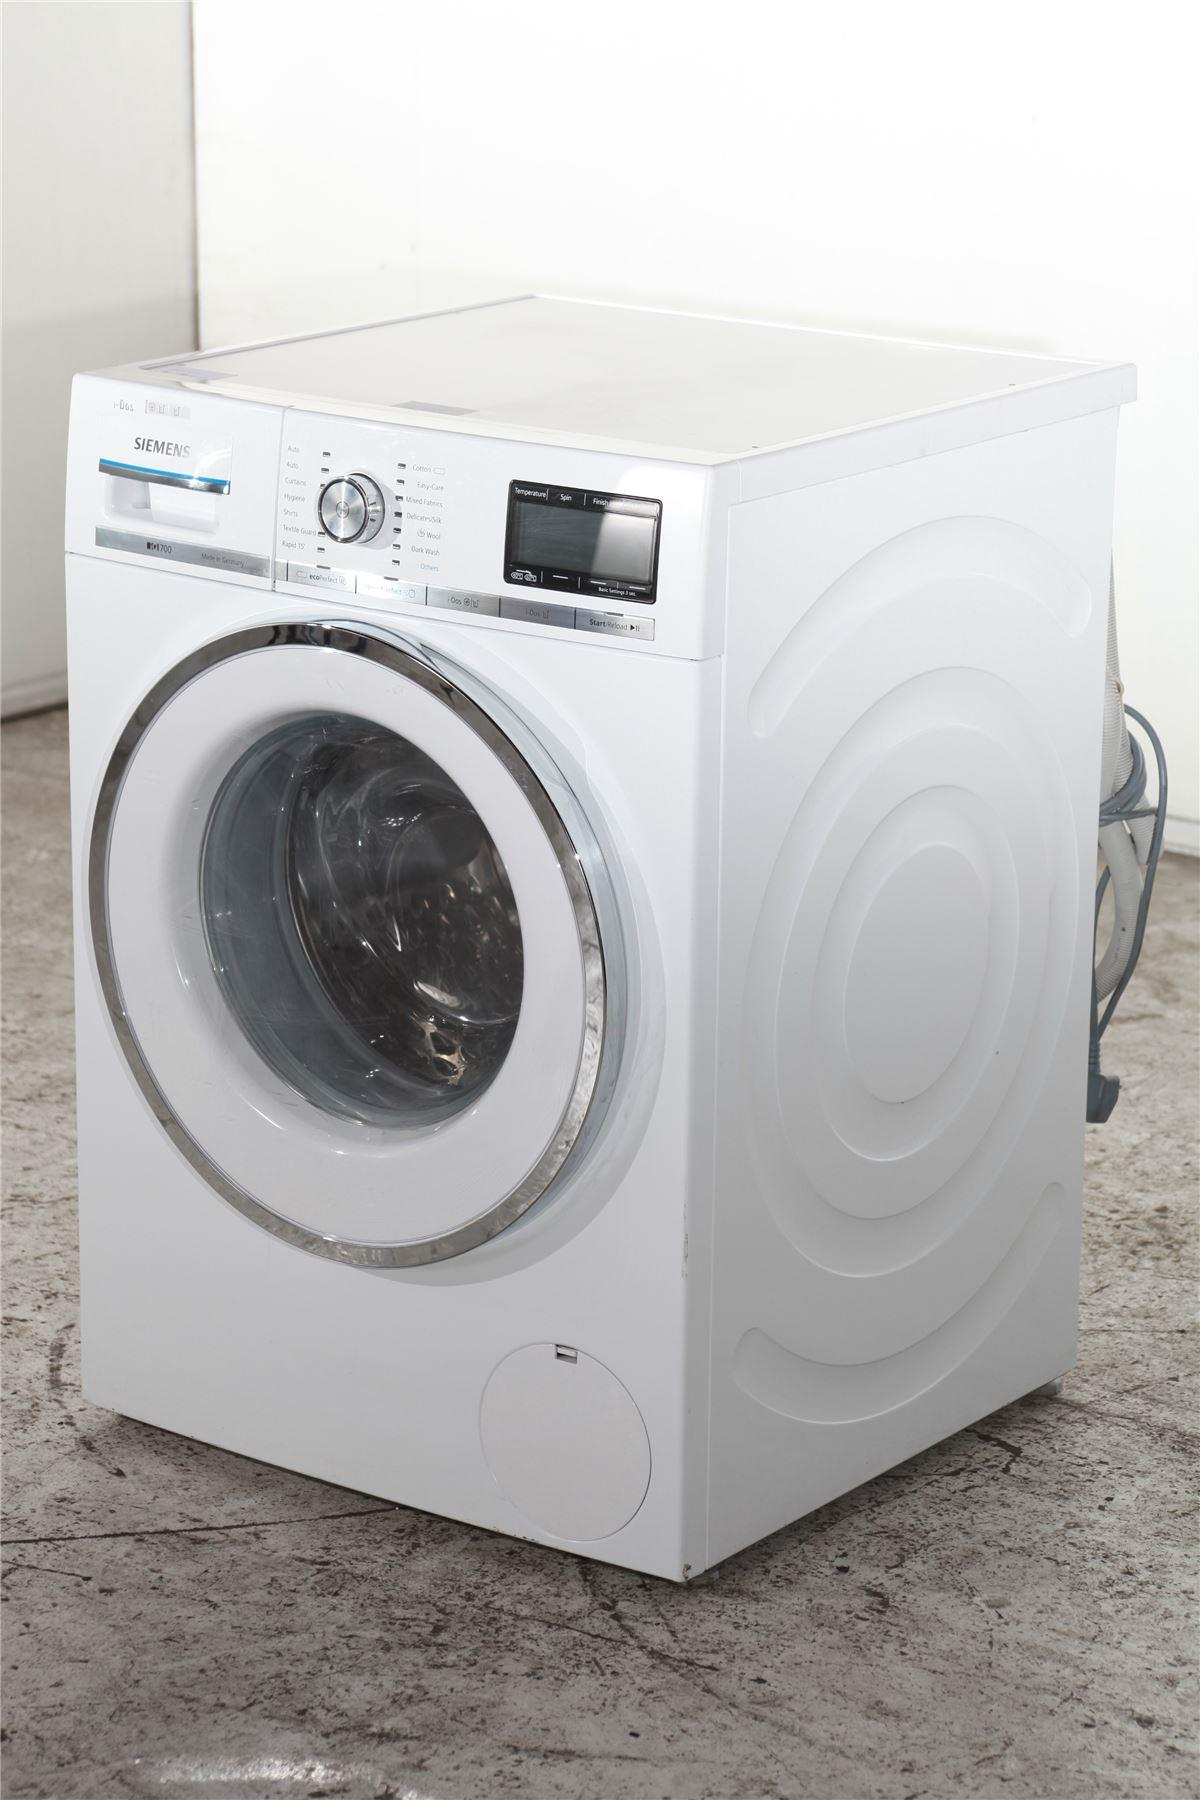 siemens iq700 8kg washing machine wm14y891gb white. Black Bedroom Furniture Sets. Home Design Ideas